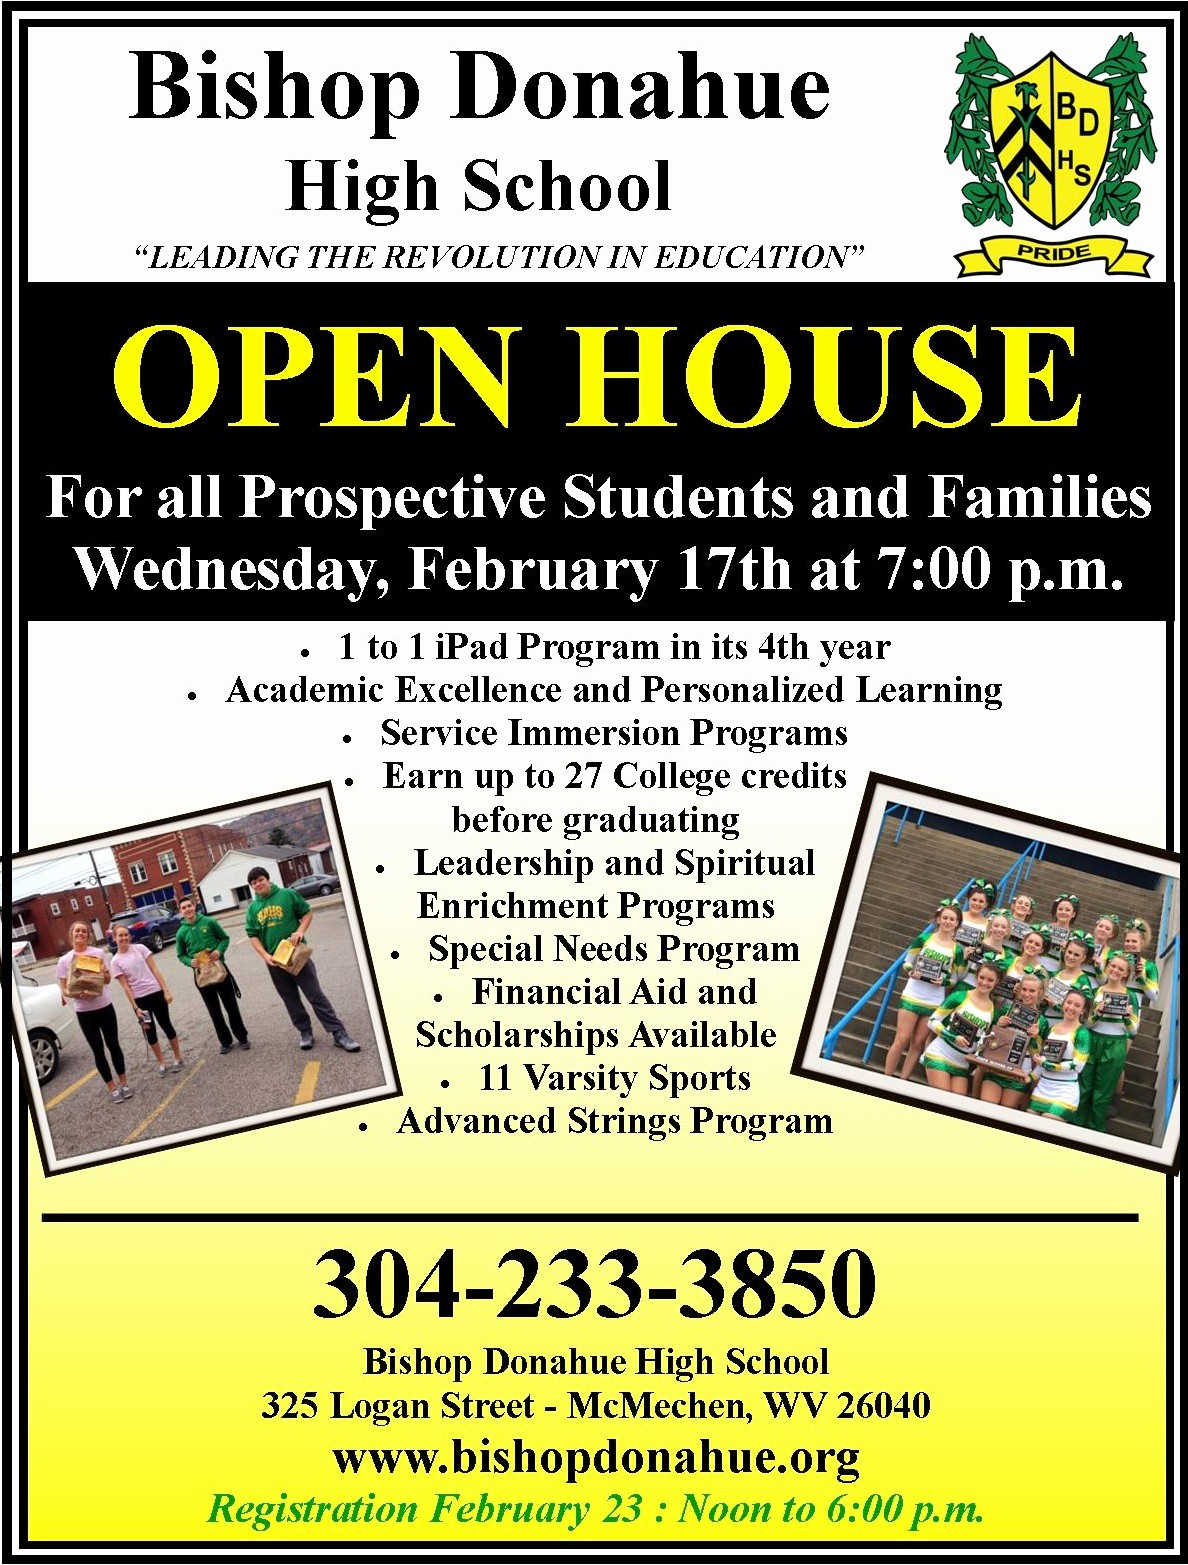 Open House Flyer for School Lovely News Archives Page 10 Of 34 Bishop Donahue High School